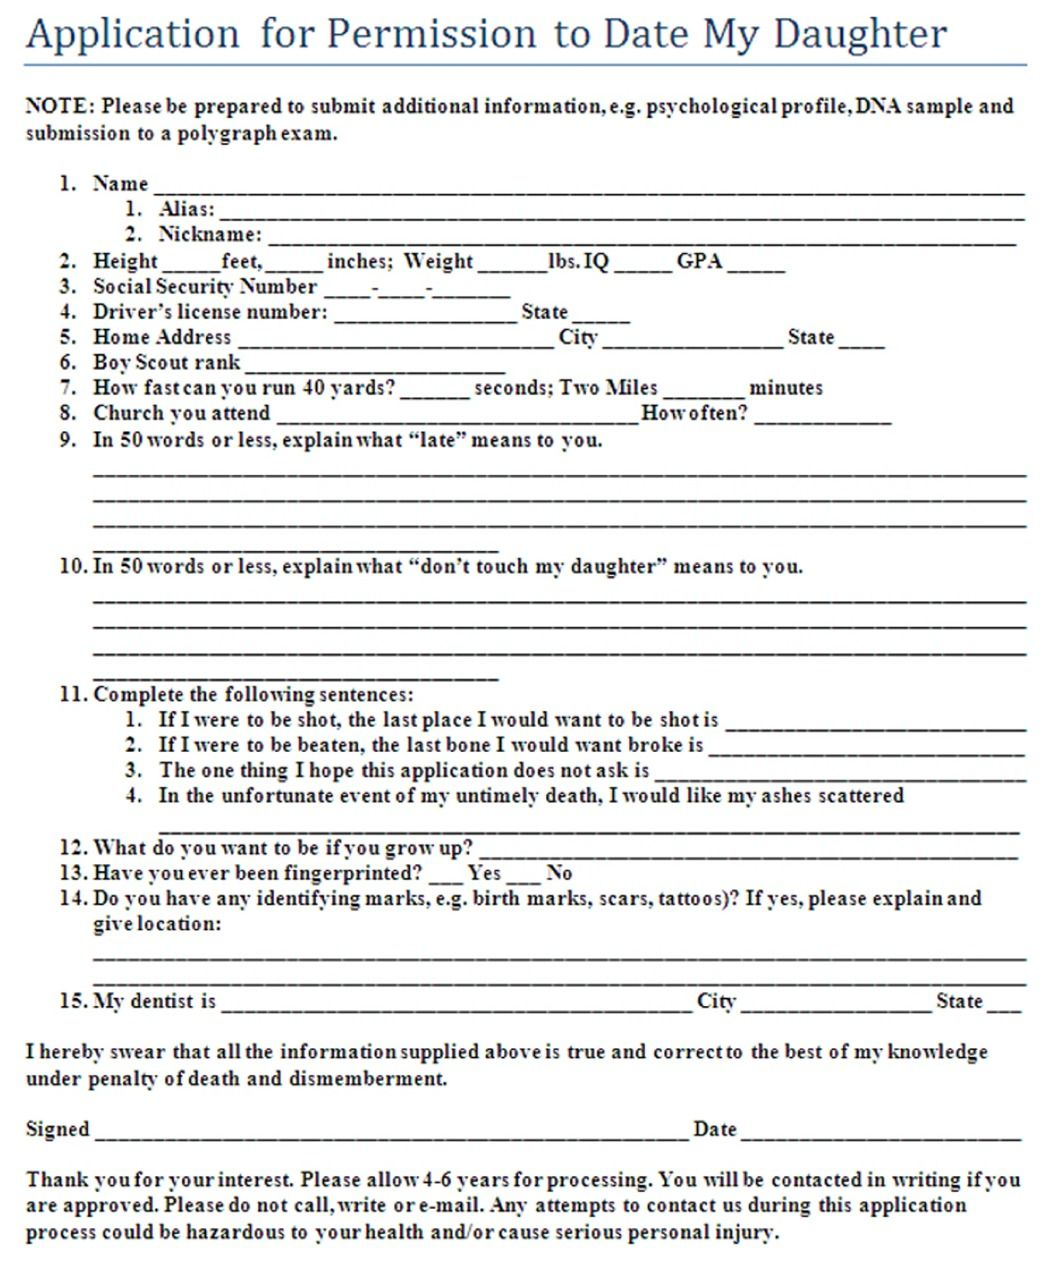 Dating my daughter application form